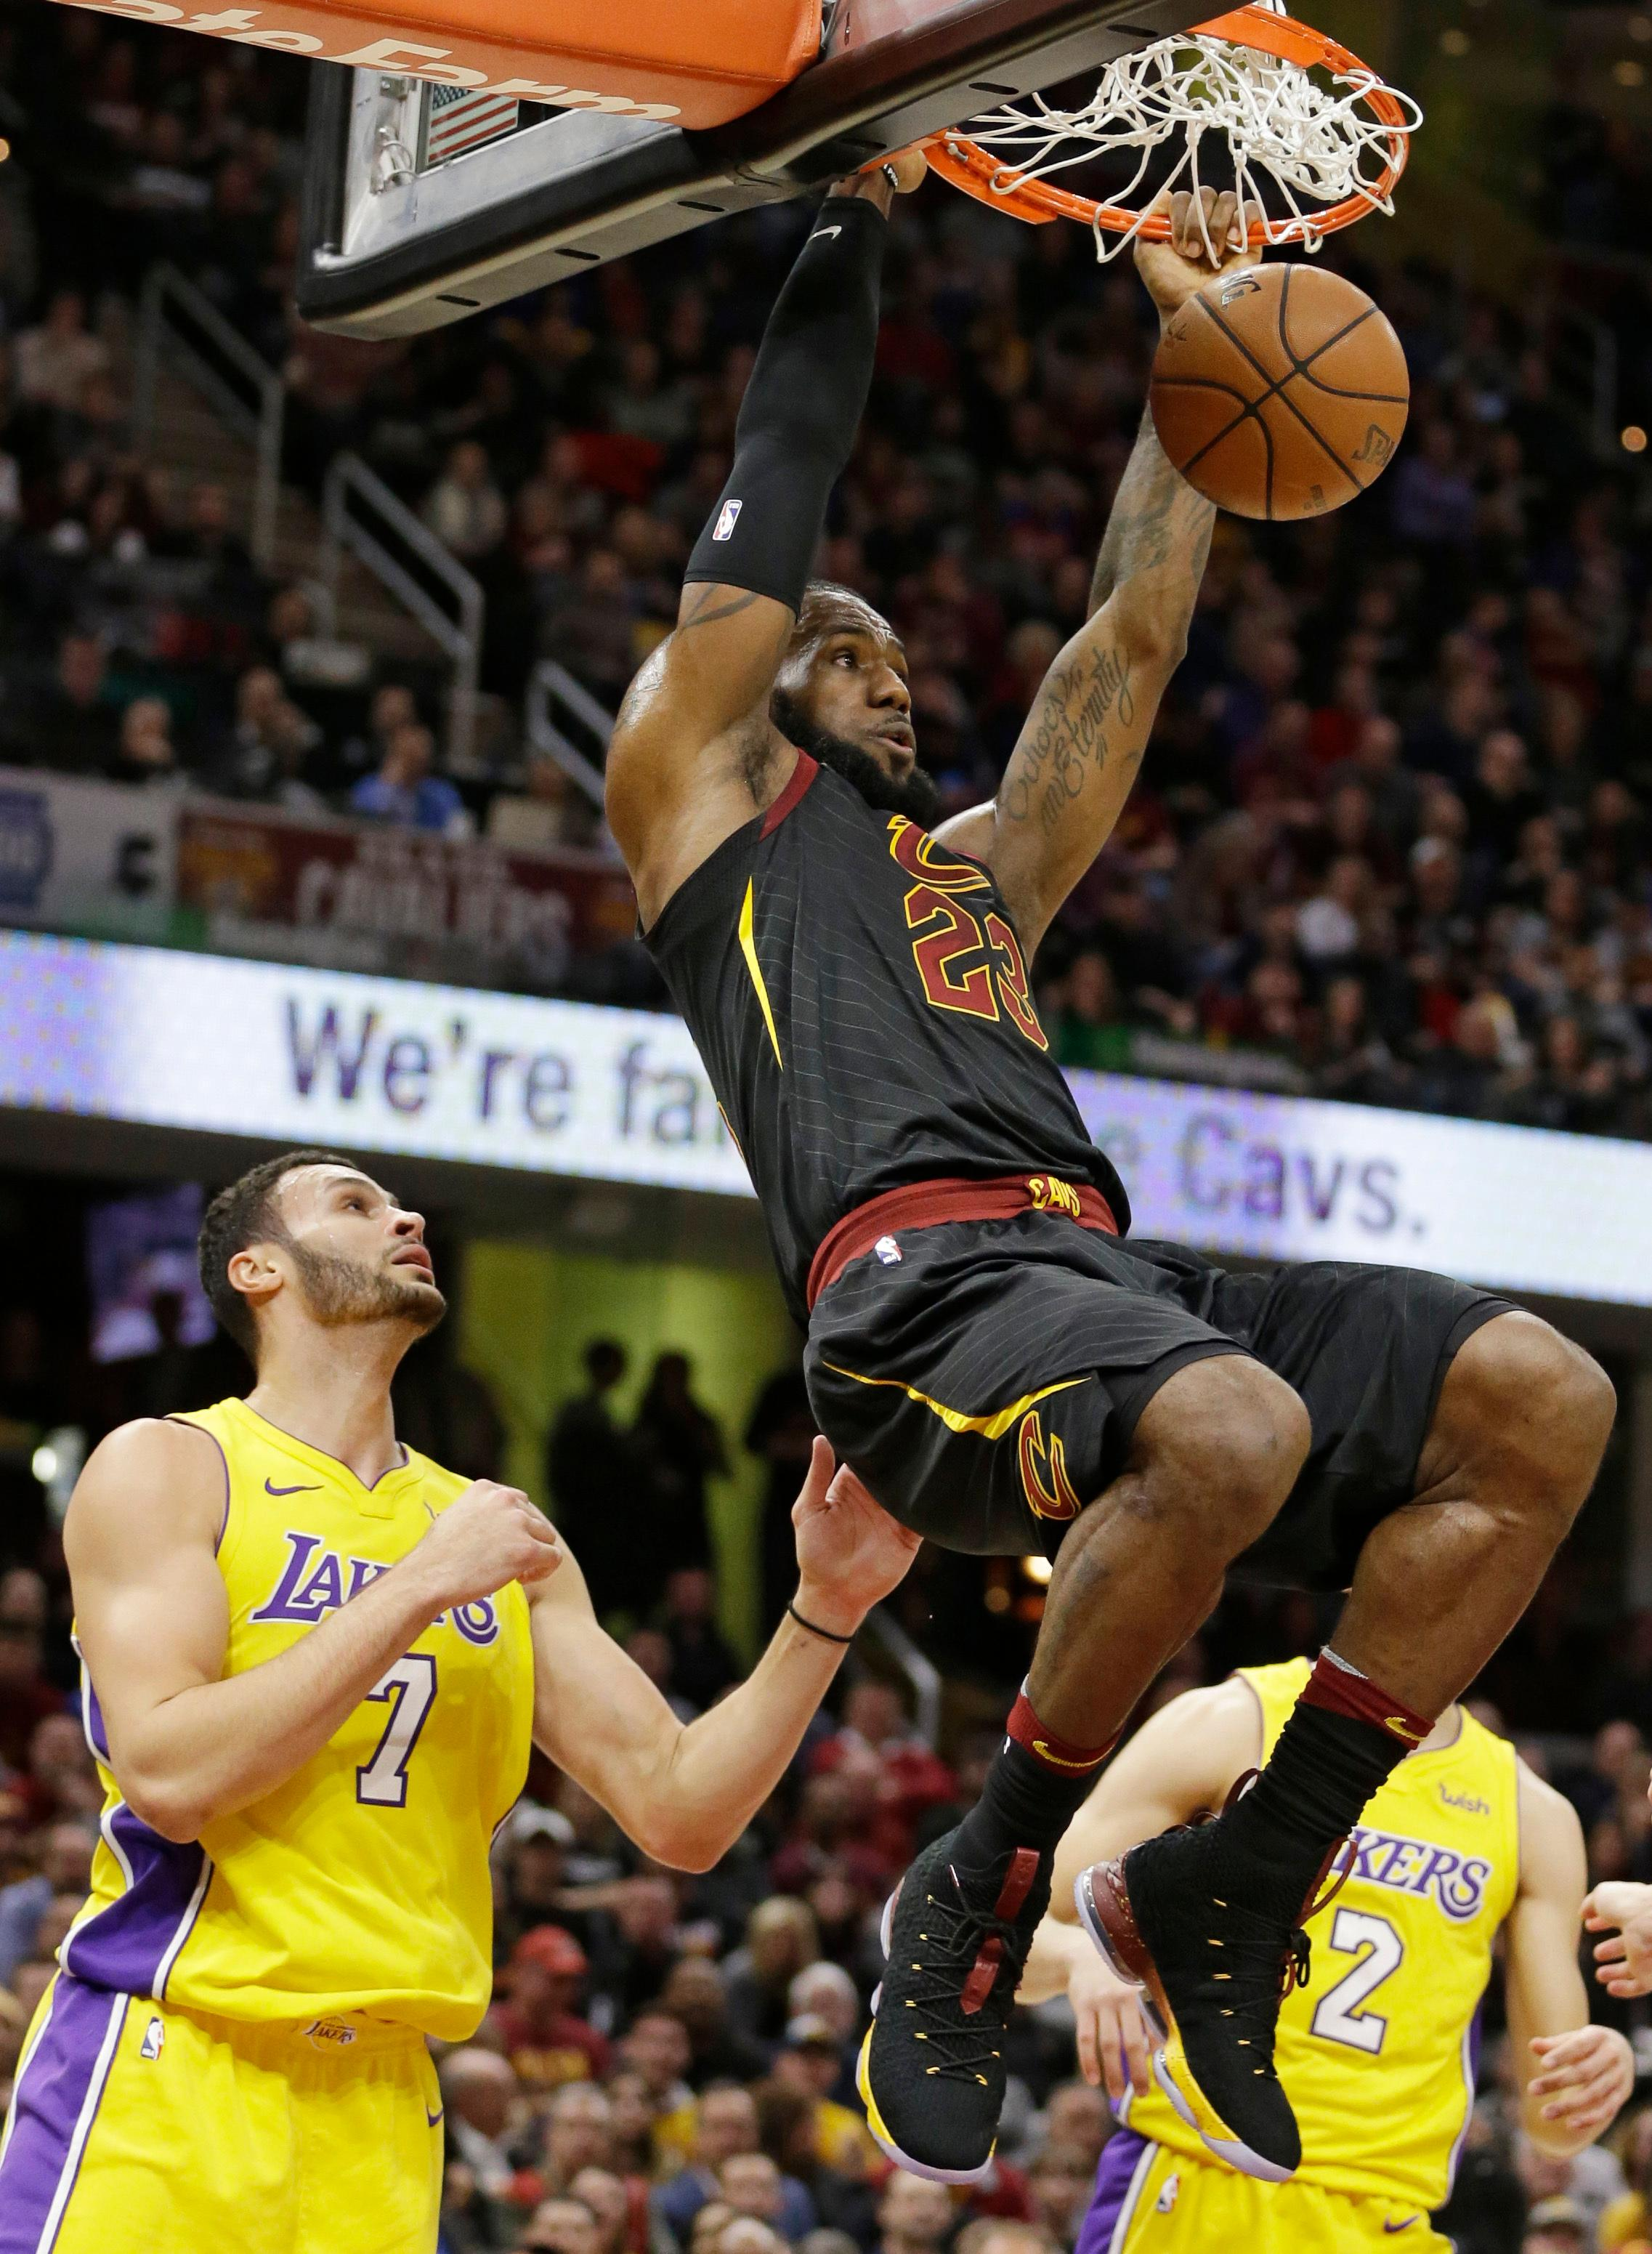 Cleveland Cavaliers' LeBron James (23) dunks against Los Angeles Lakers' Larry Nance Jr. (7) in the first half of an NBA basketball game, Thursday, Dec. 14, 2017, in Cleveland. (AP Photo/Tony Dejak)